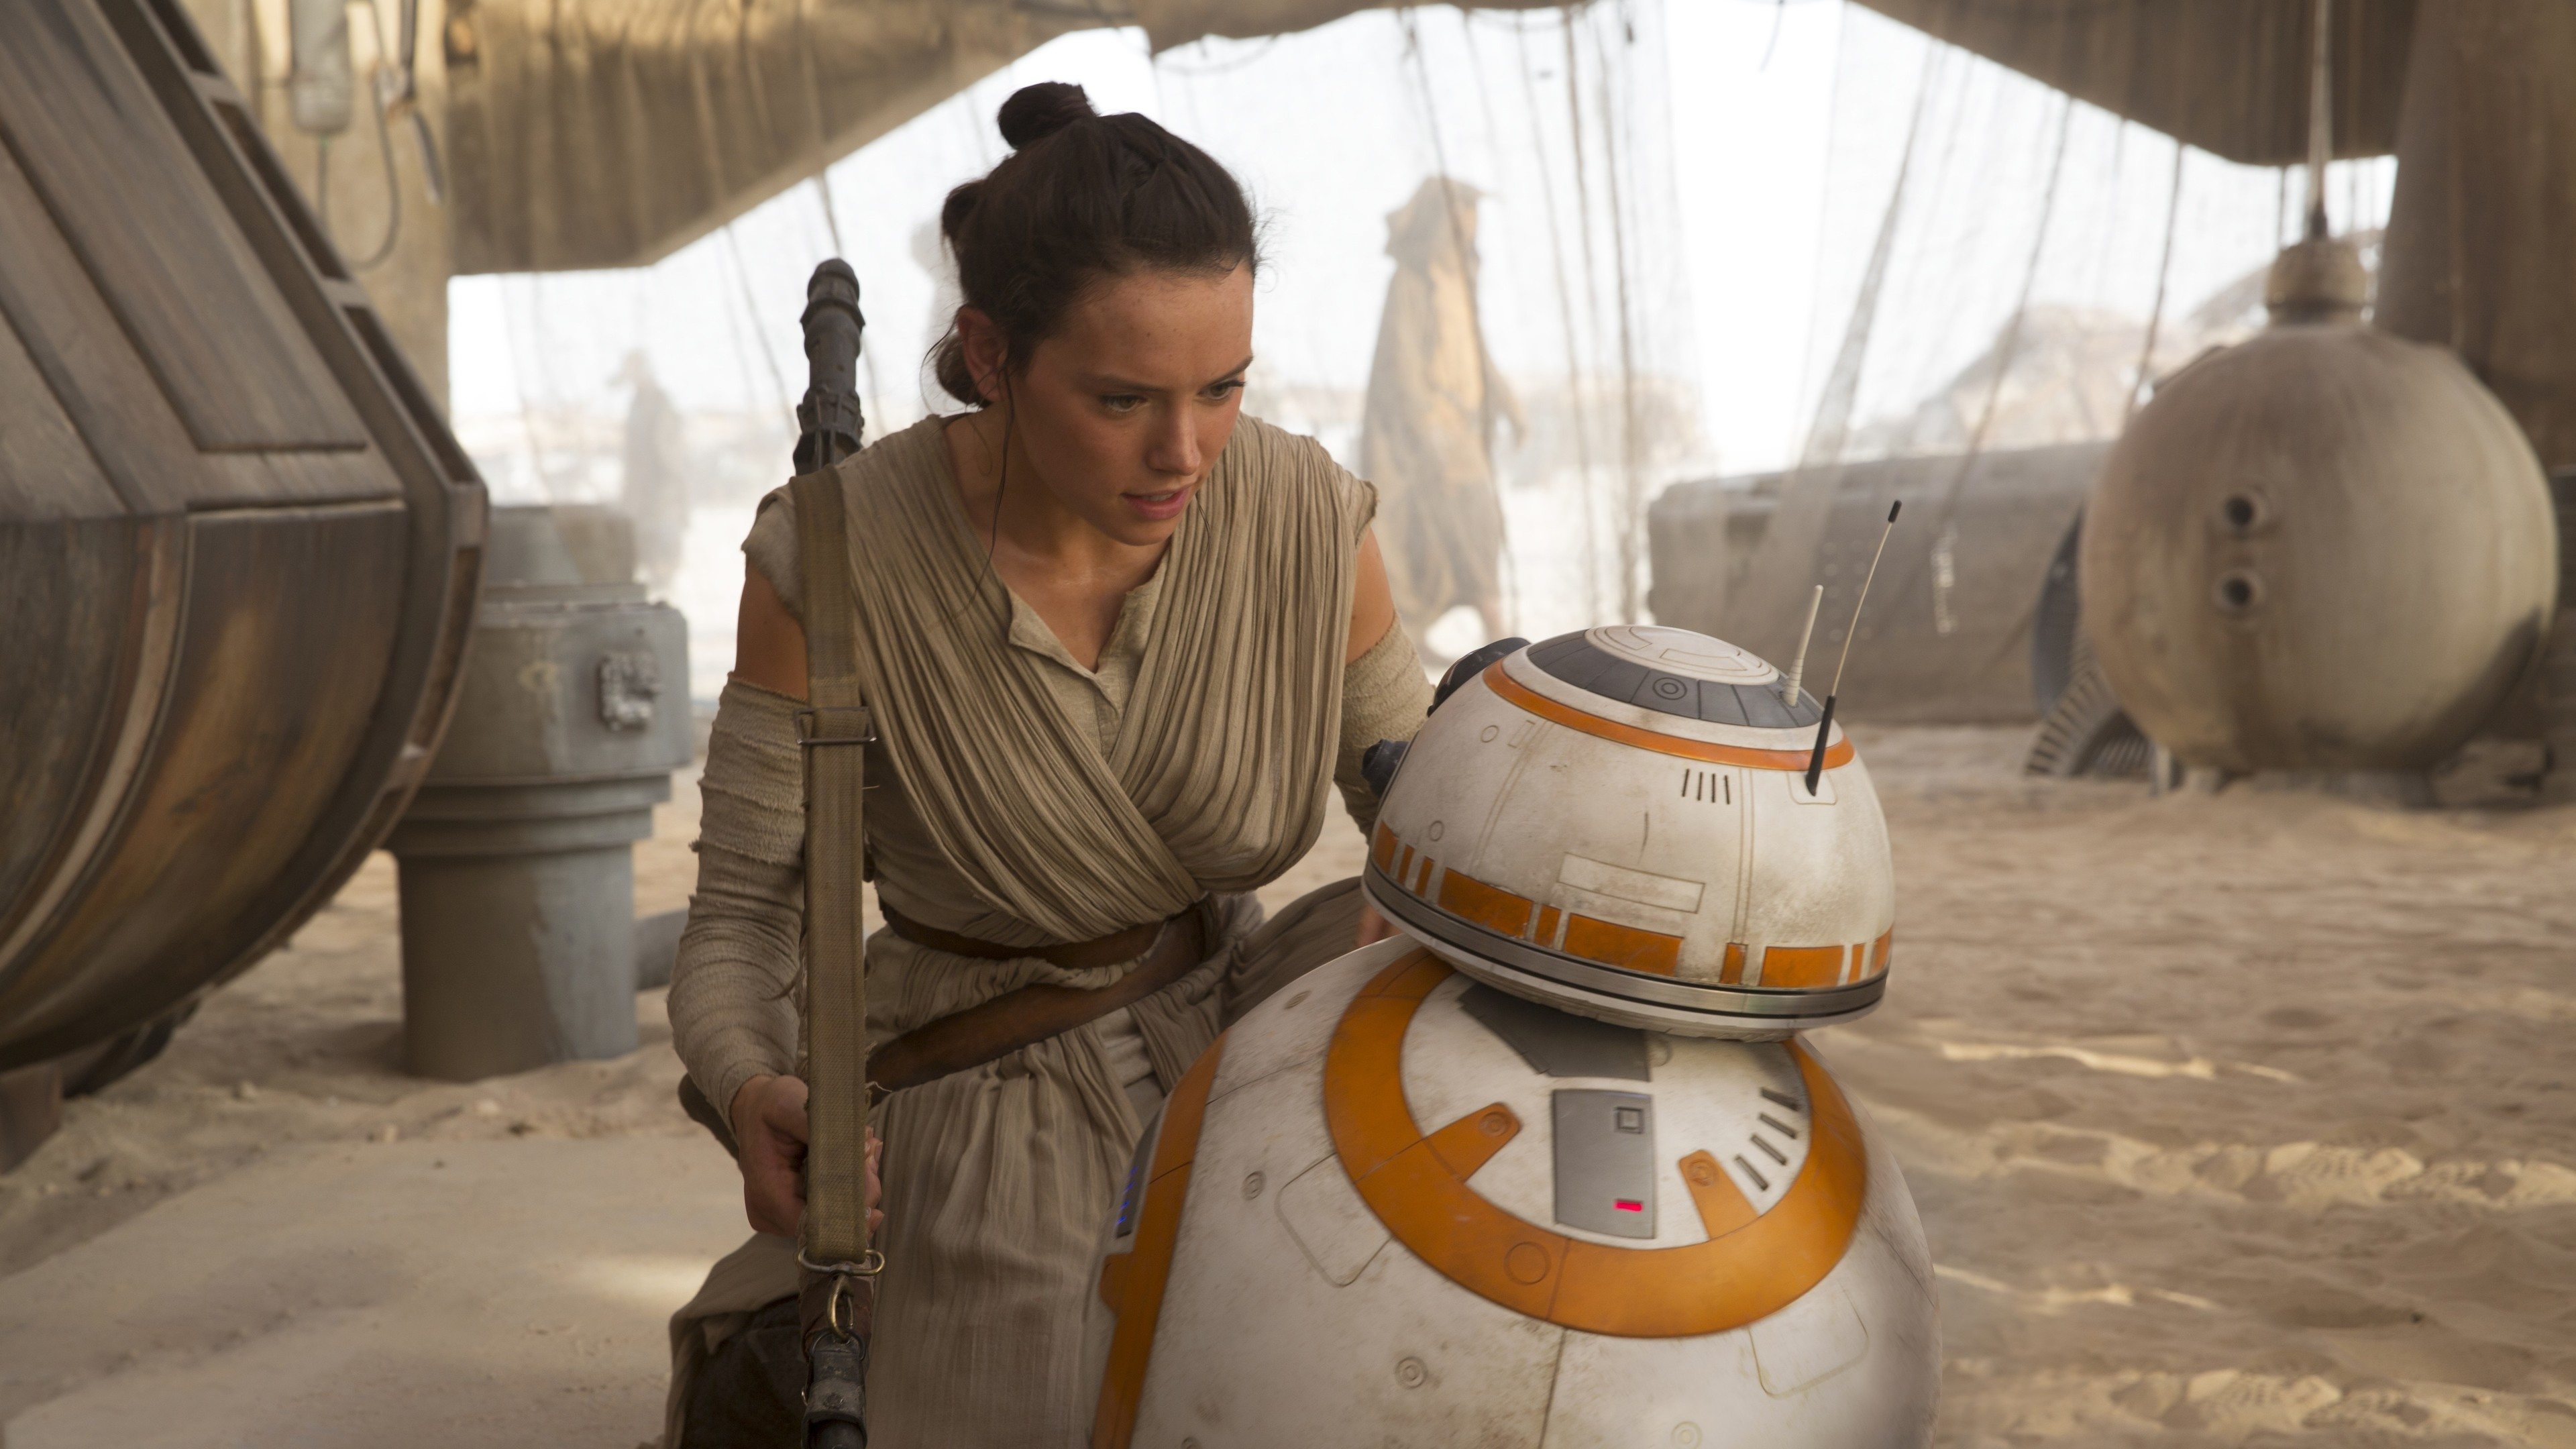 daisy rildeywith bb 8 1536856749 - Daisy RildeyWith BB 8 - star wars wallpapers, rey wallpapers, movies wallpapers, daisy ridley wallpapers, bb 8 wallpapers